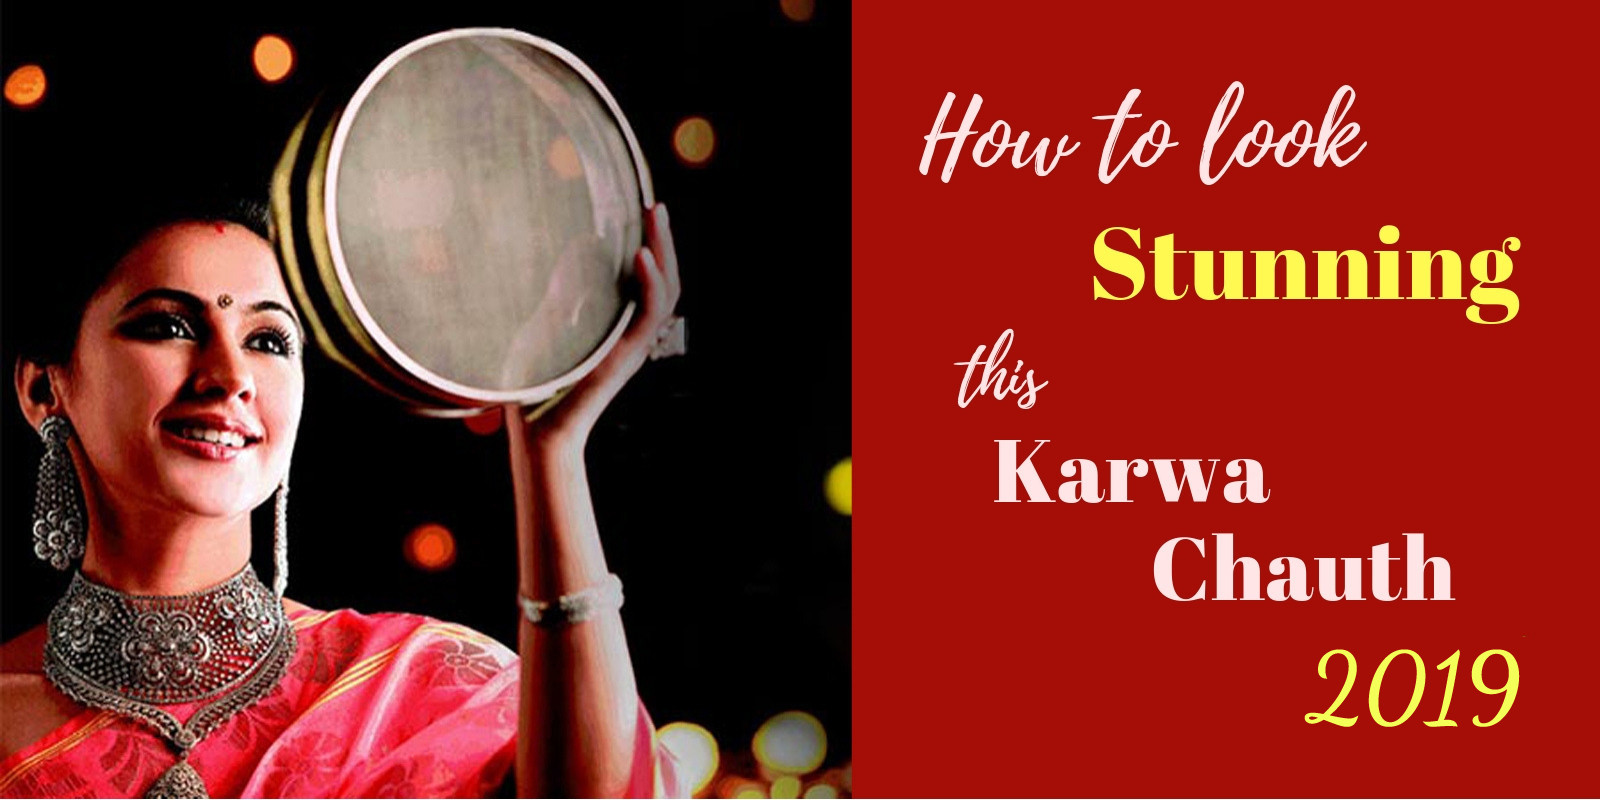 How to look stunning this Karwa Chauth 2019